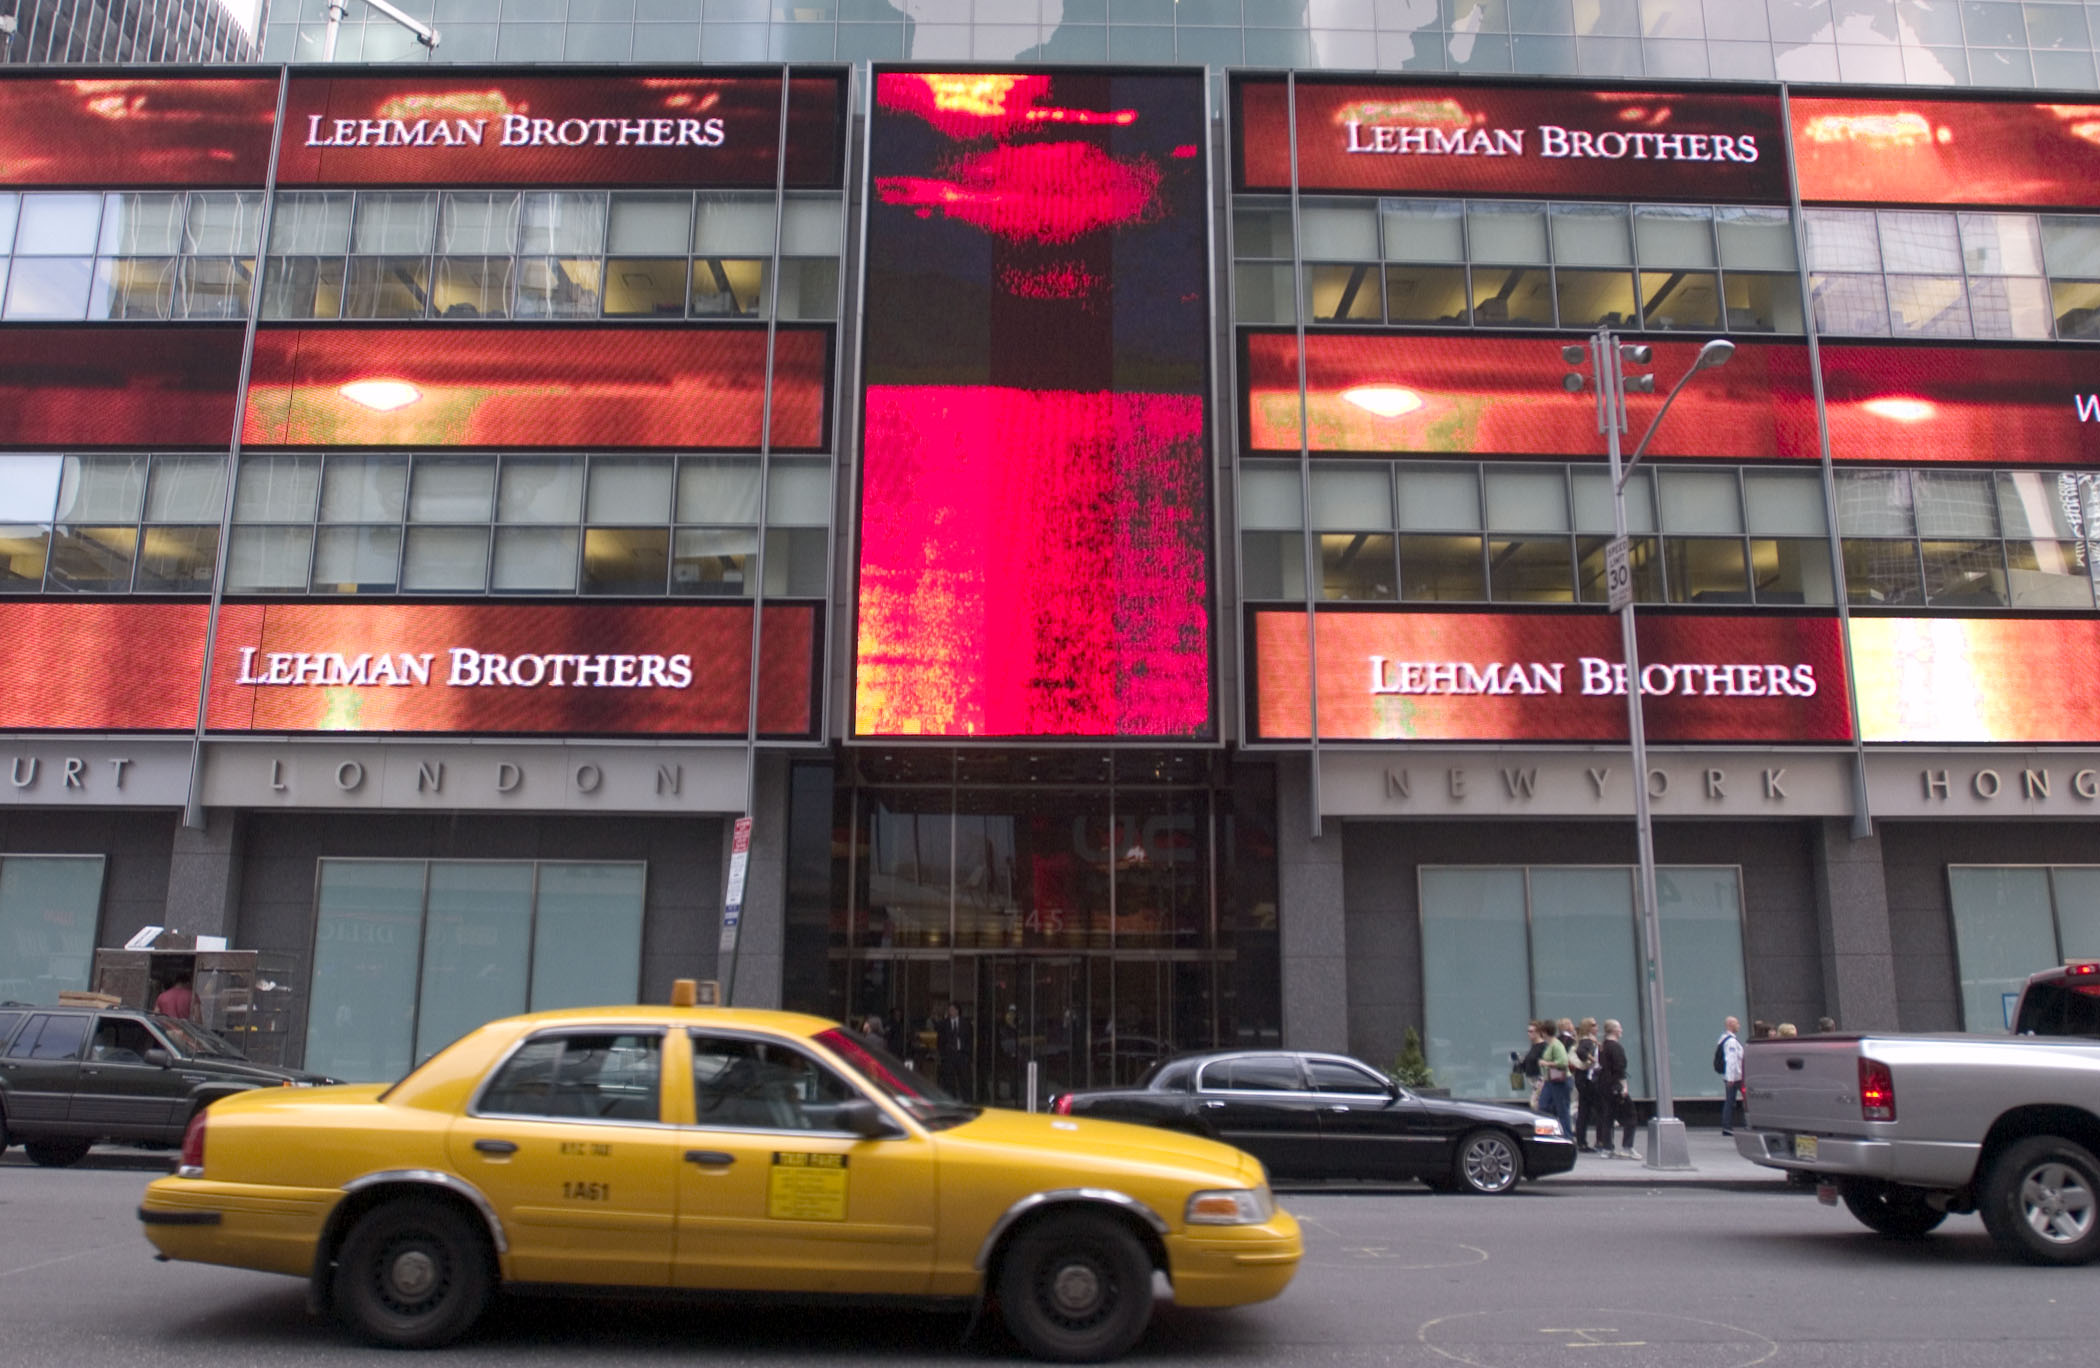 Ten years after the collapse of Lehman Brothers and the financial crisis, the world doesn't seem to have learnt all the lessons, economists say. Photo: Bloomberg